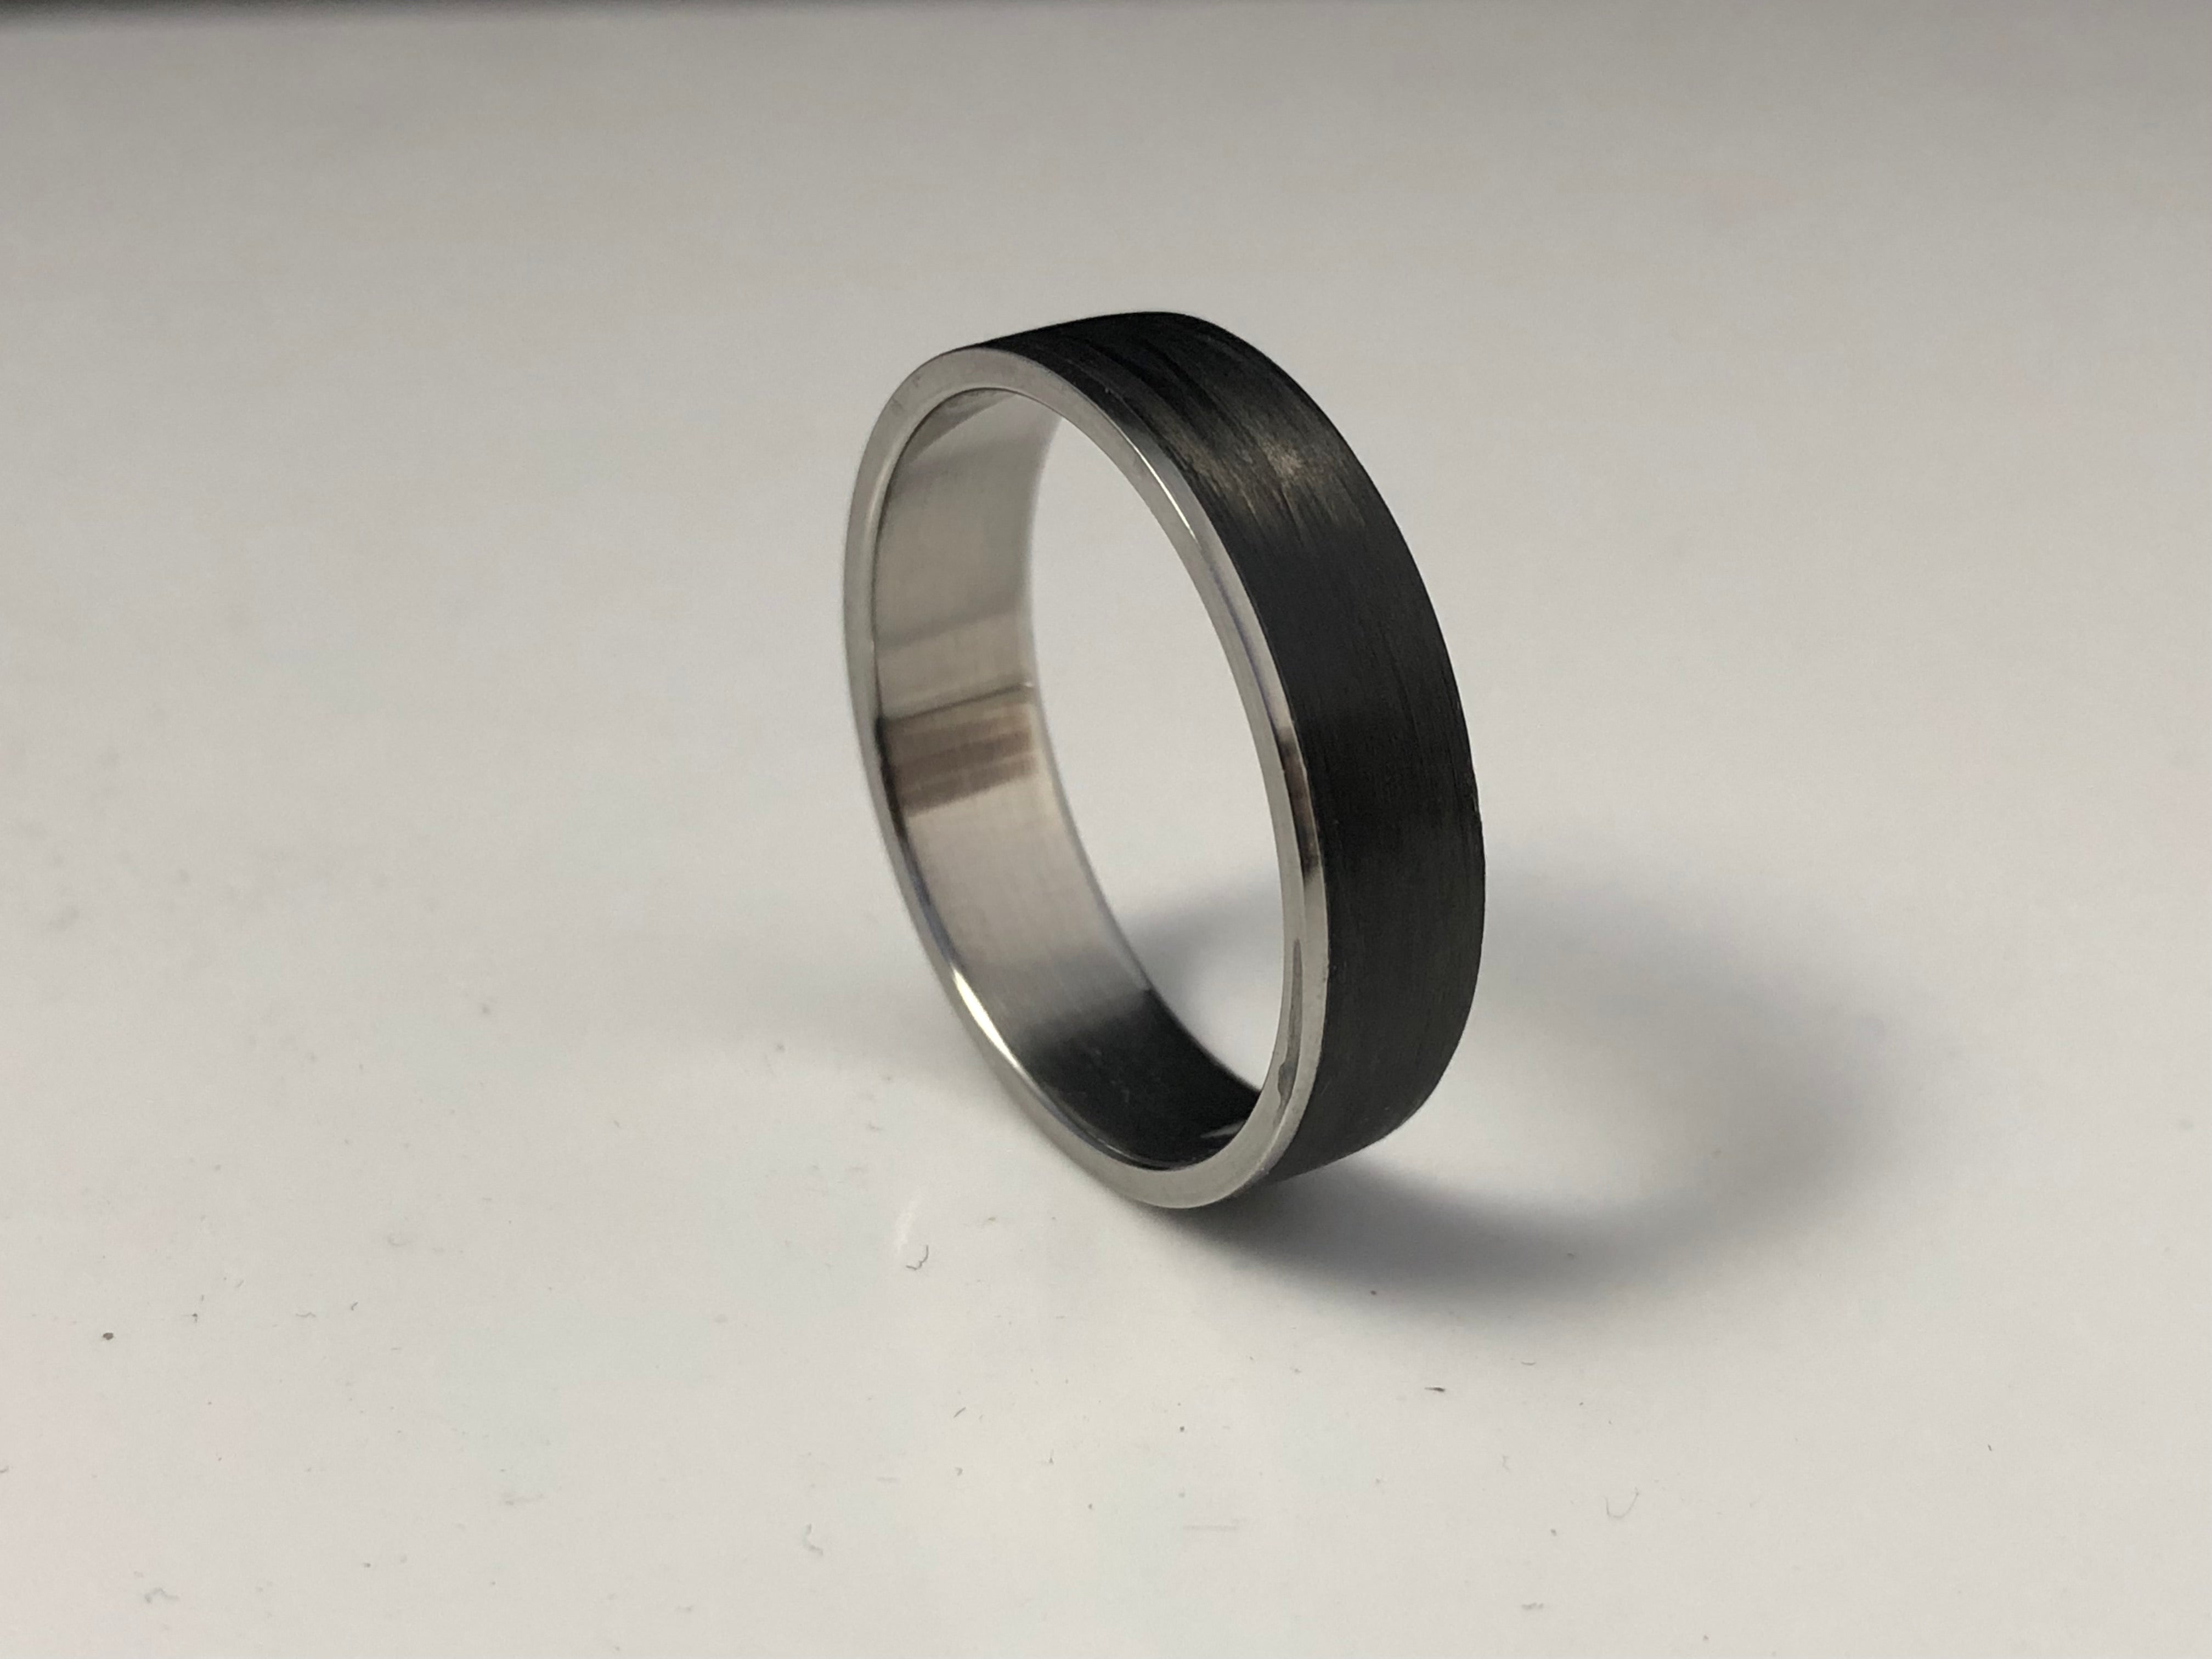 Steel ring carbon fiber inlay size 13